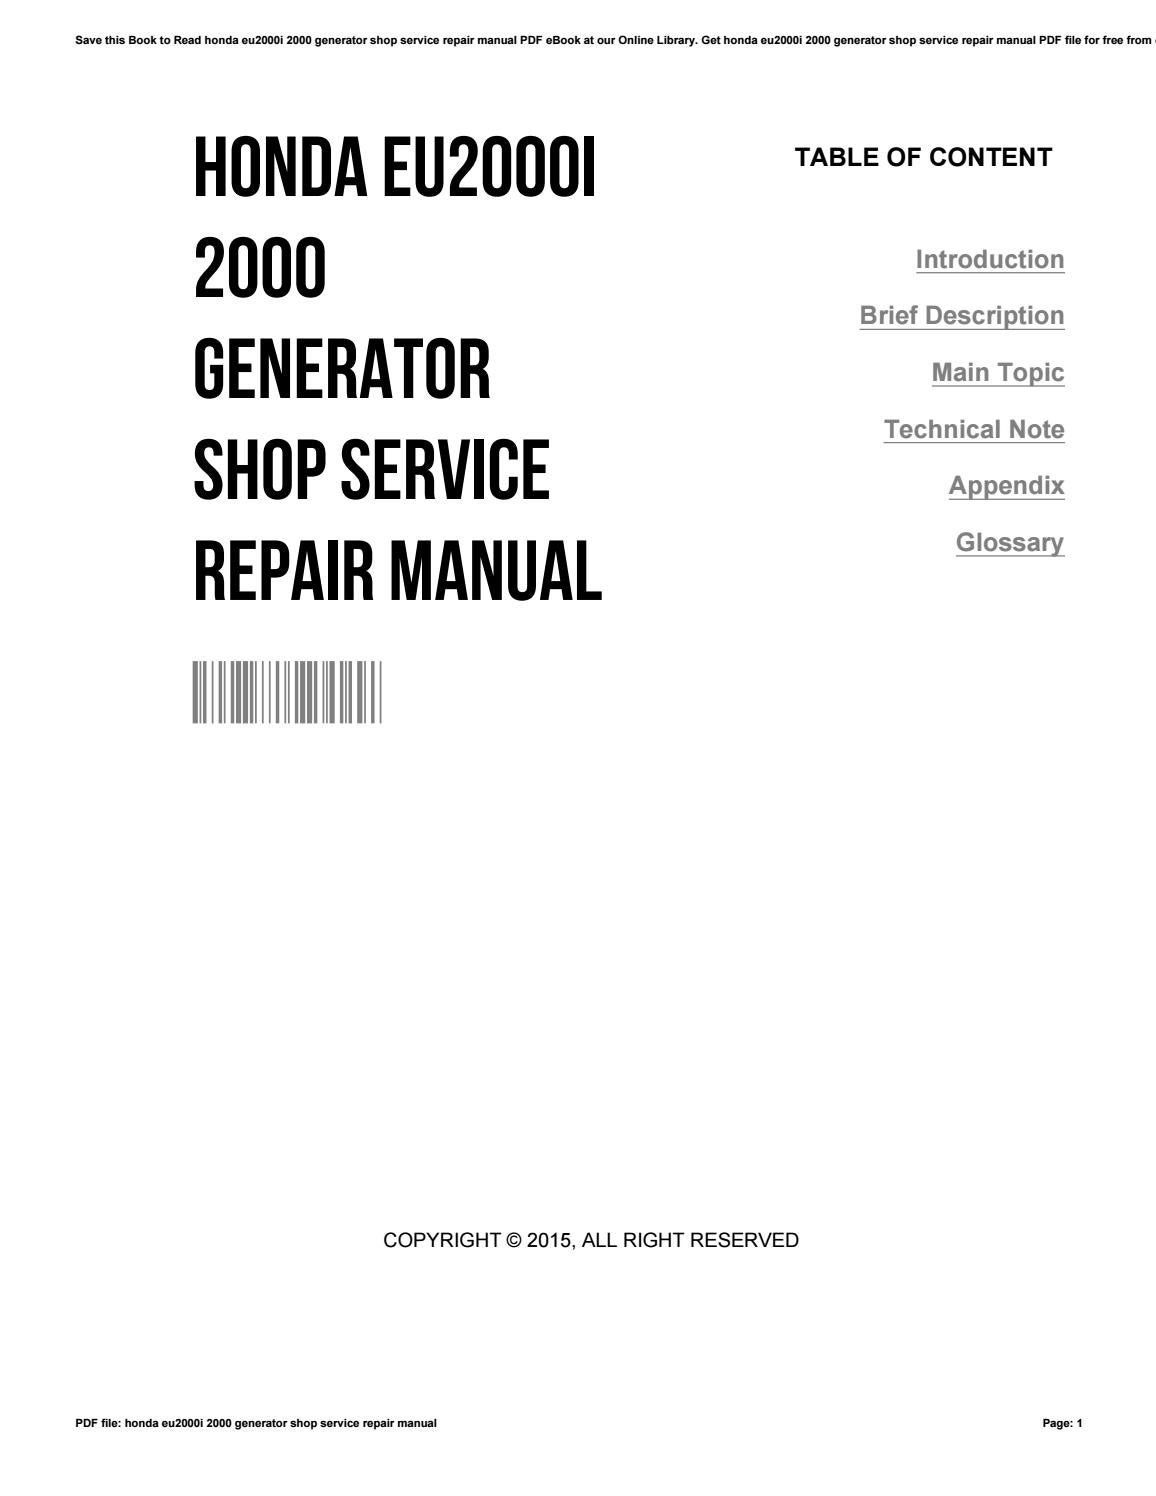 Honda eu2000i 2000 generator shop service repair manual by